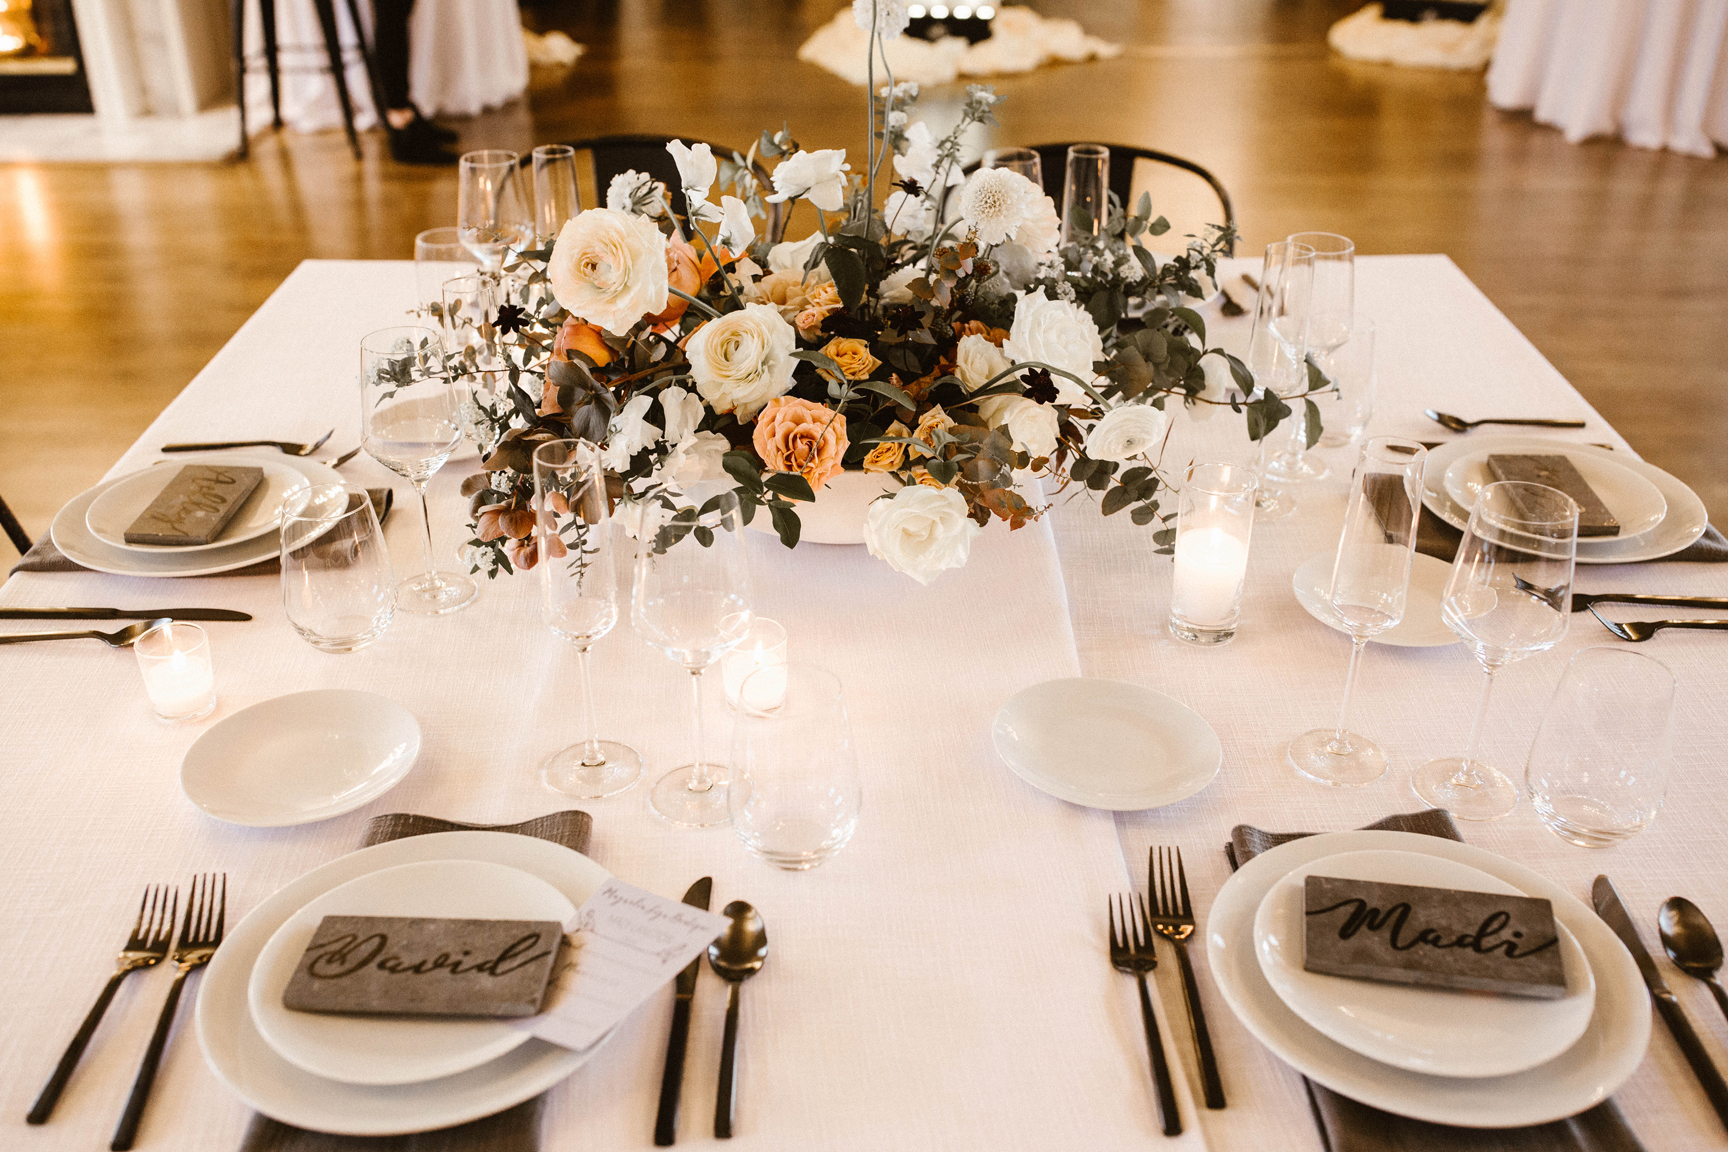 Hollywood+Anderson+House_Woodinville_2017_Weddings+In+Woodinville174.jpg